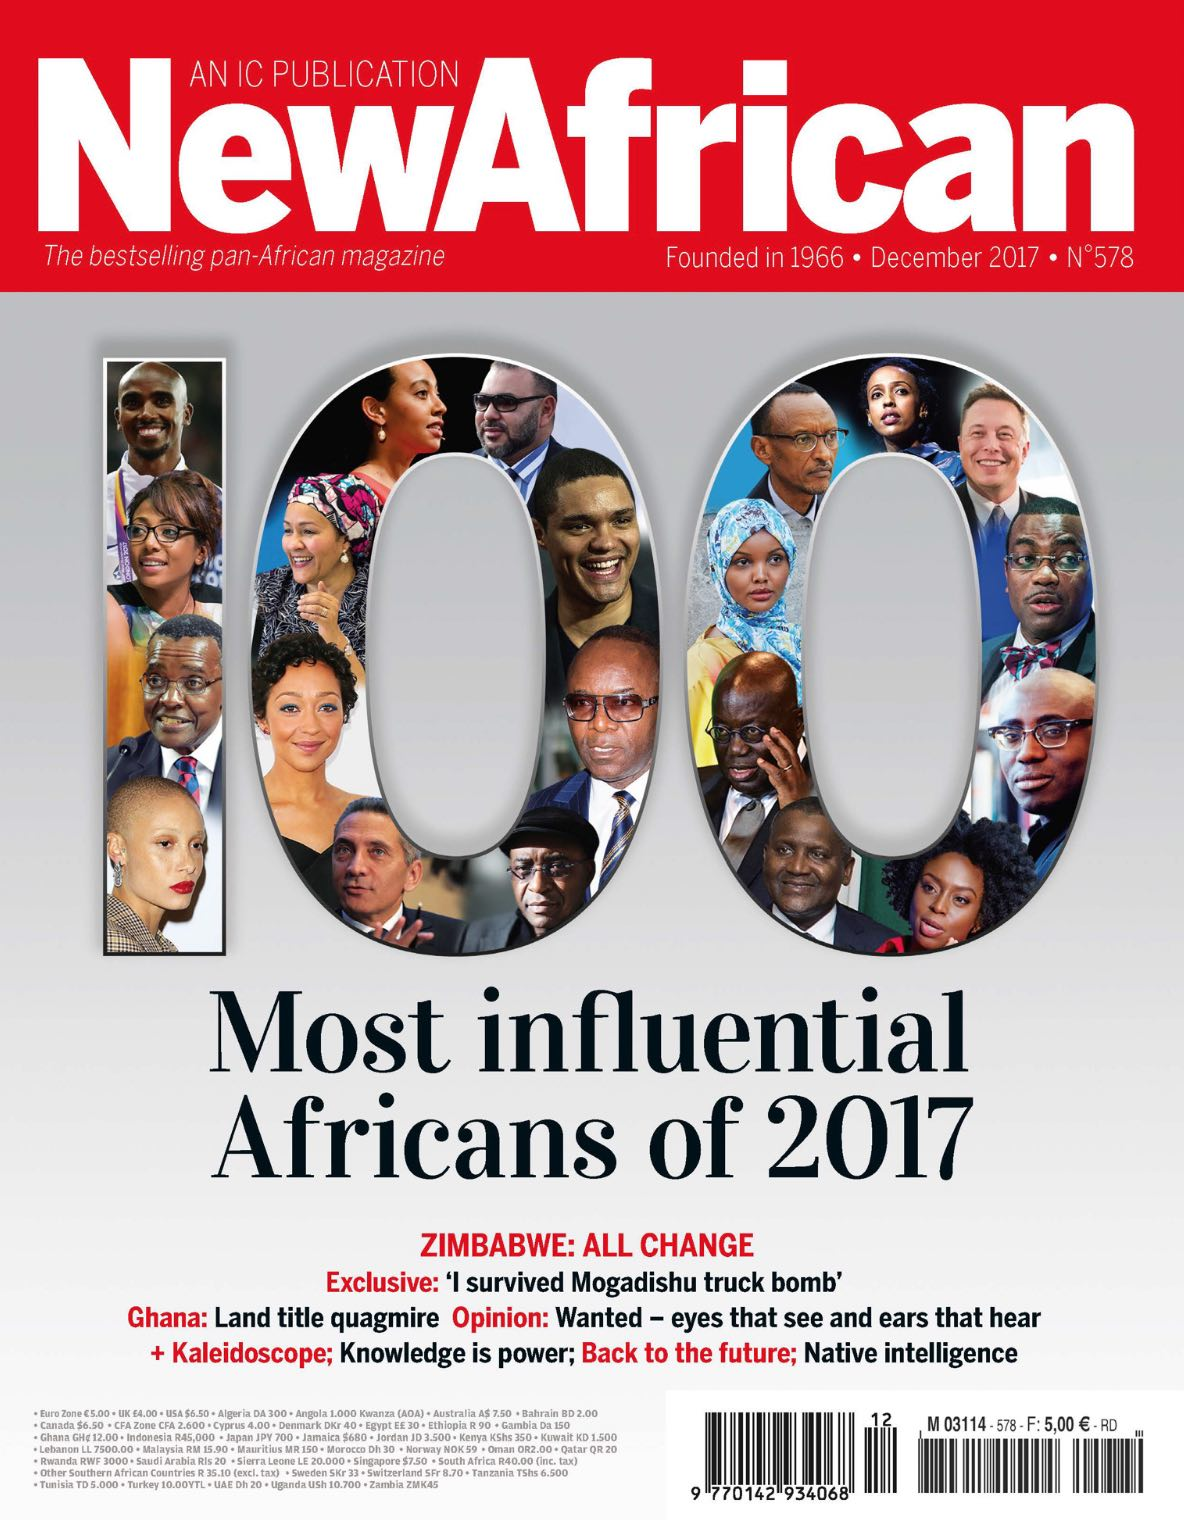 100-most-influential-africans-2017-new-african-magazine